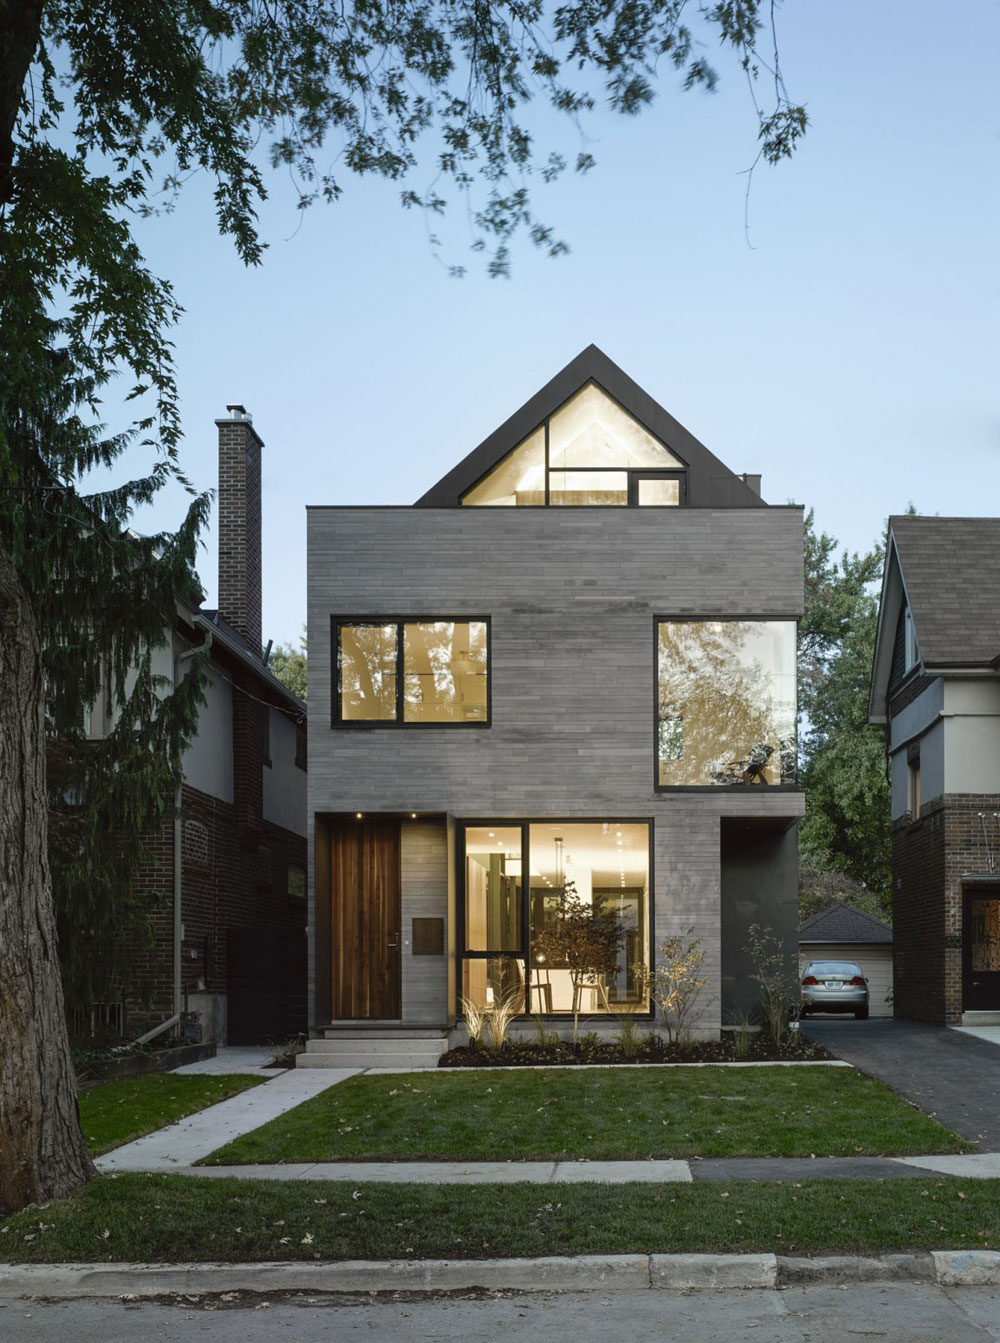 Moore-Park-Residence-von-Drew-Mandel-Architects Check out these Canadian architectural examples